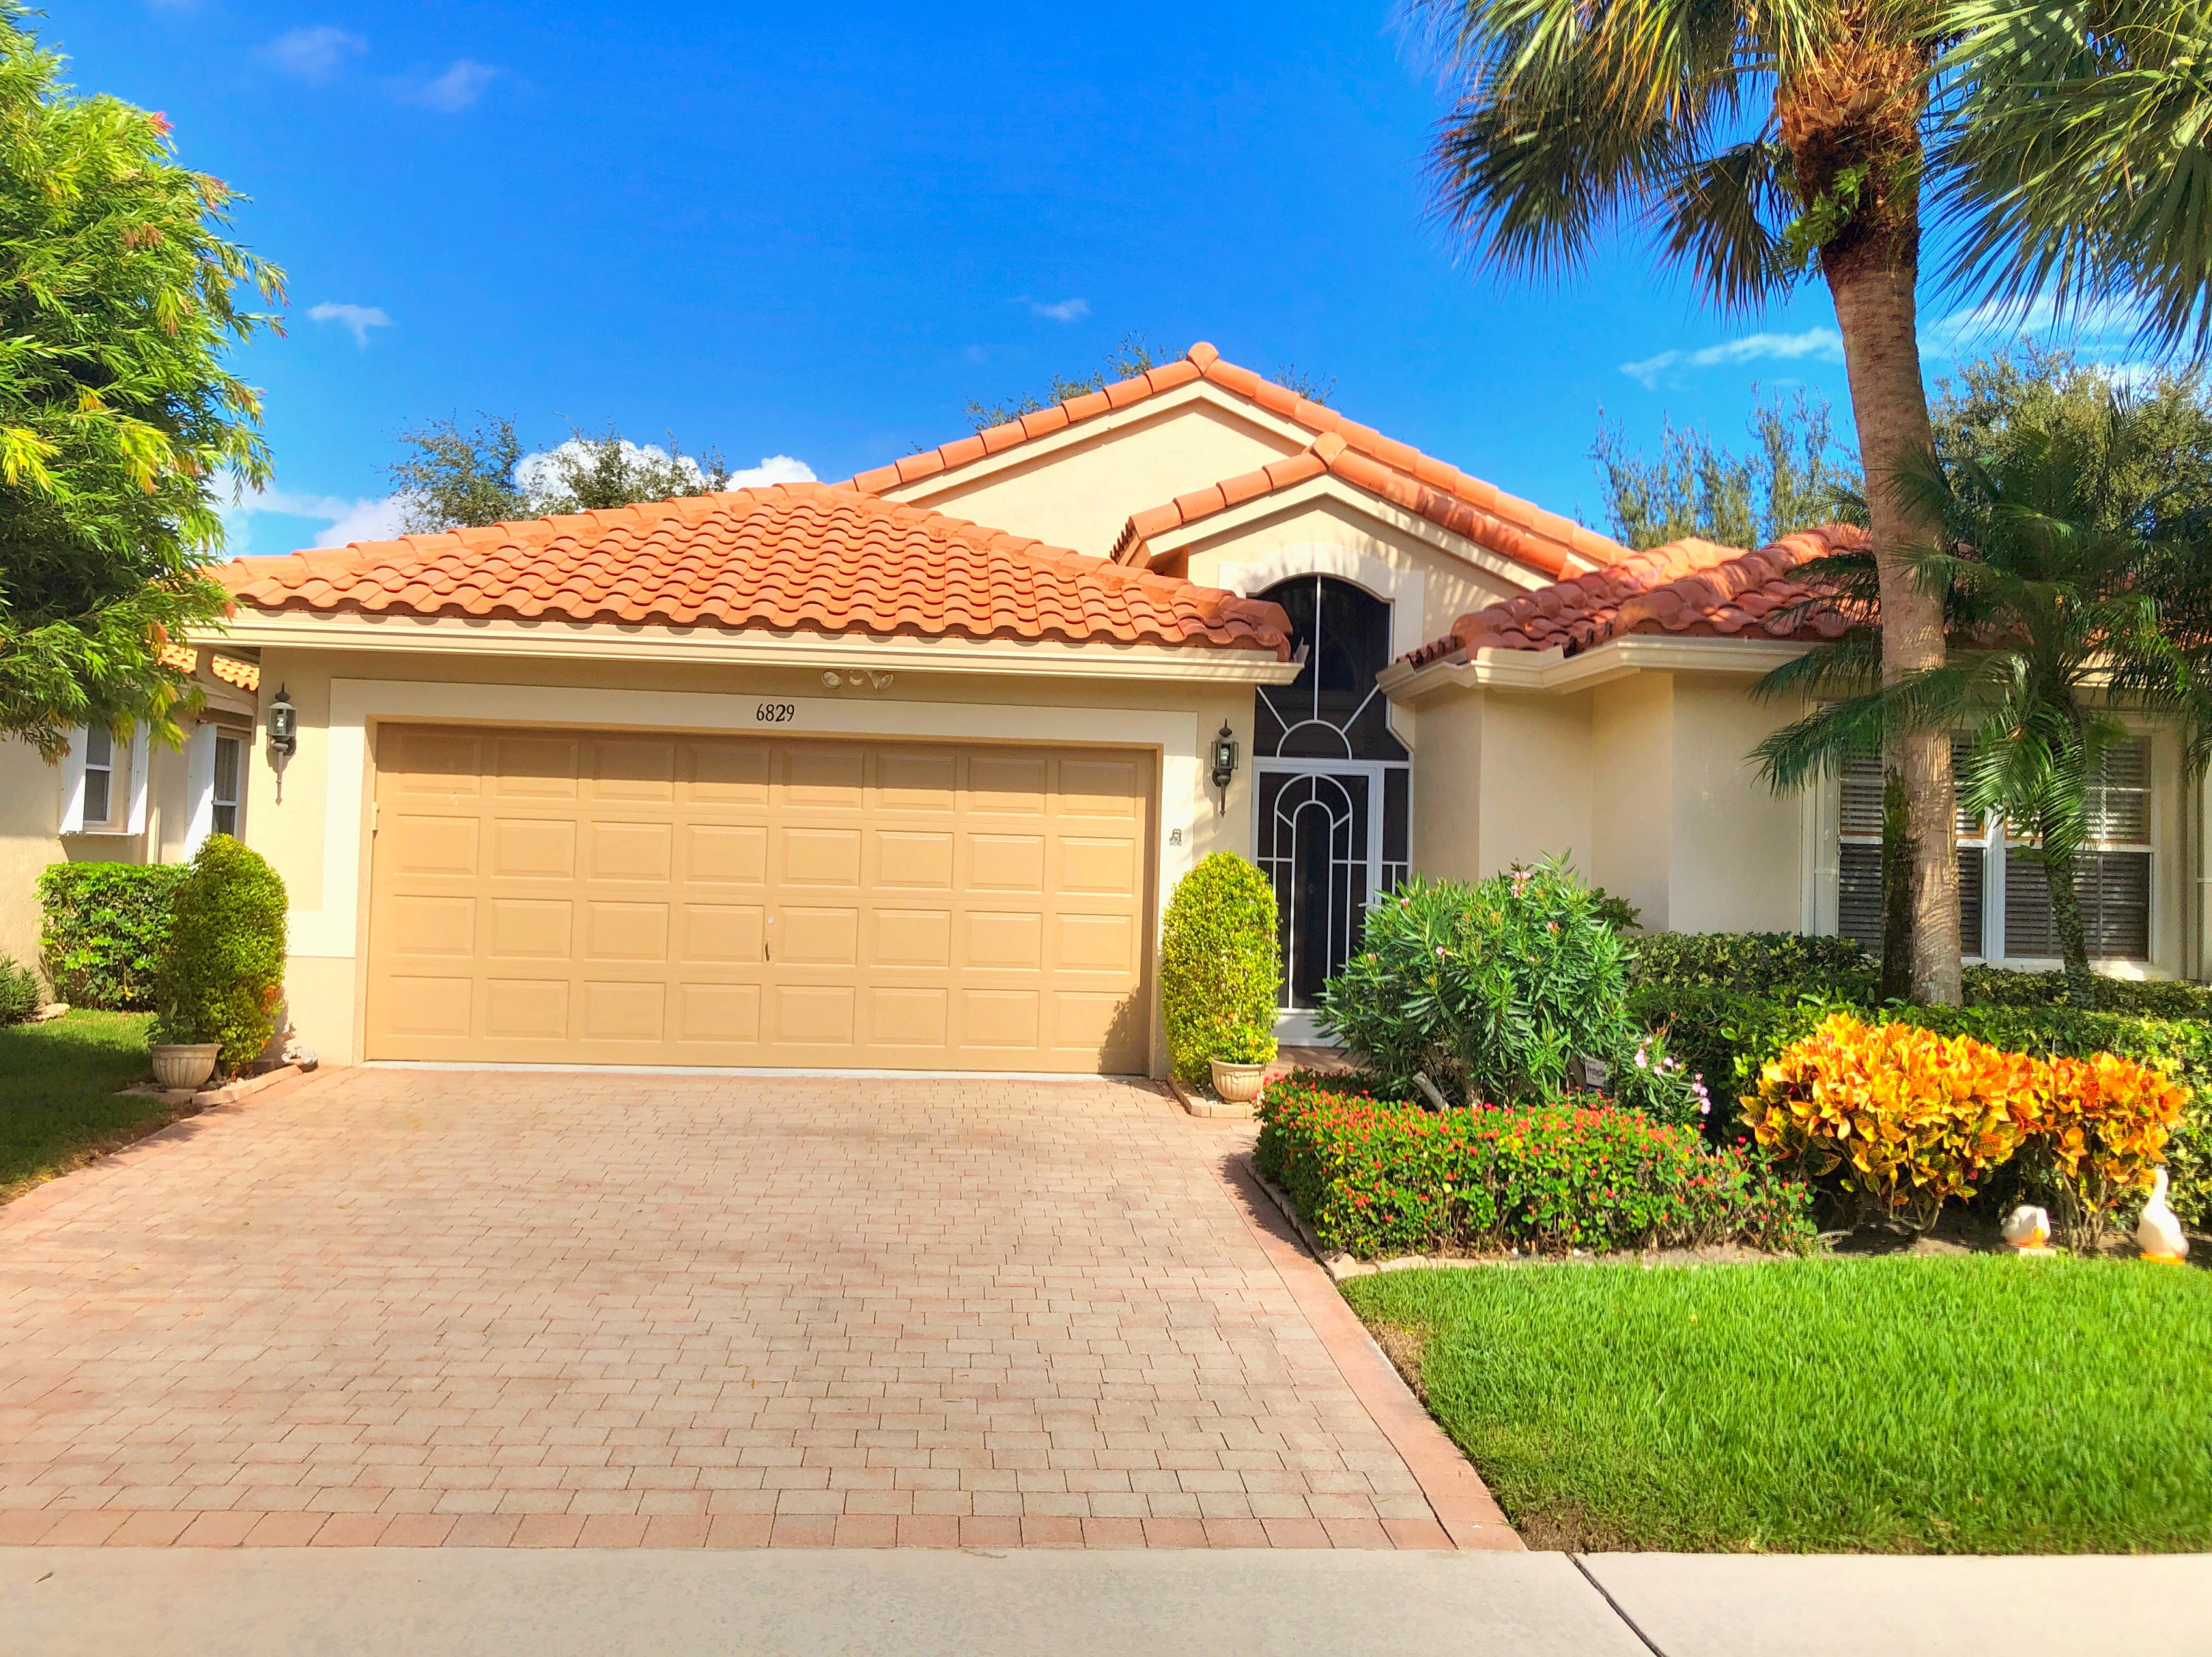 CASCADES home 6829 Castlemaine Avenue Boynton Beach FL 33437